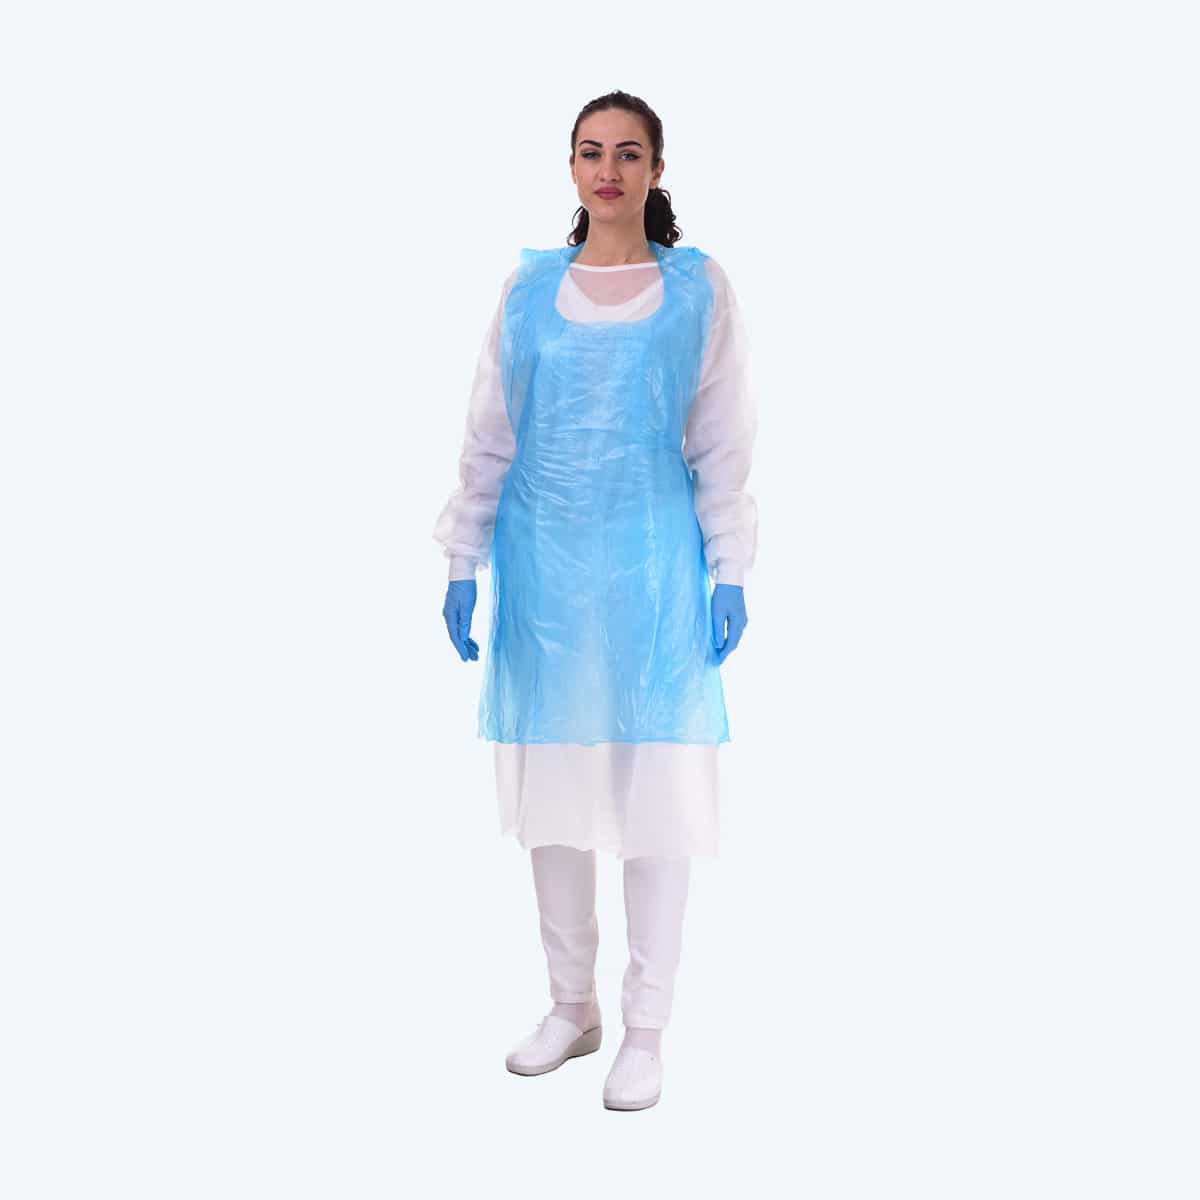 Apron. Lady standing and wearing a plastic apron made to prevent external influence on the doctor. The apron is transparent and covers the front of the body